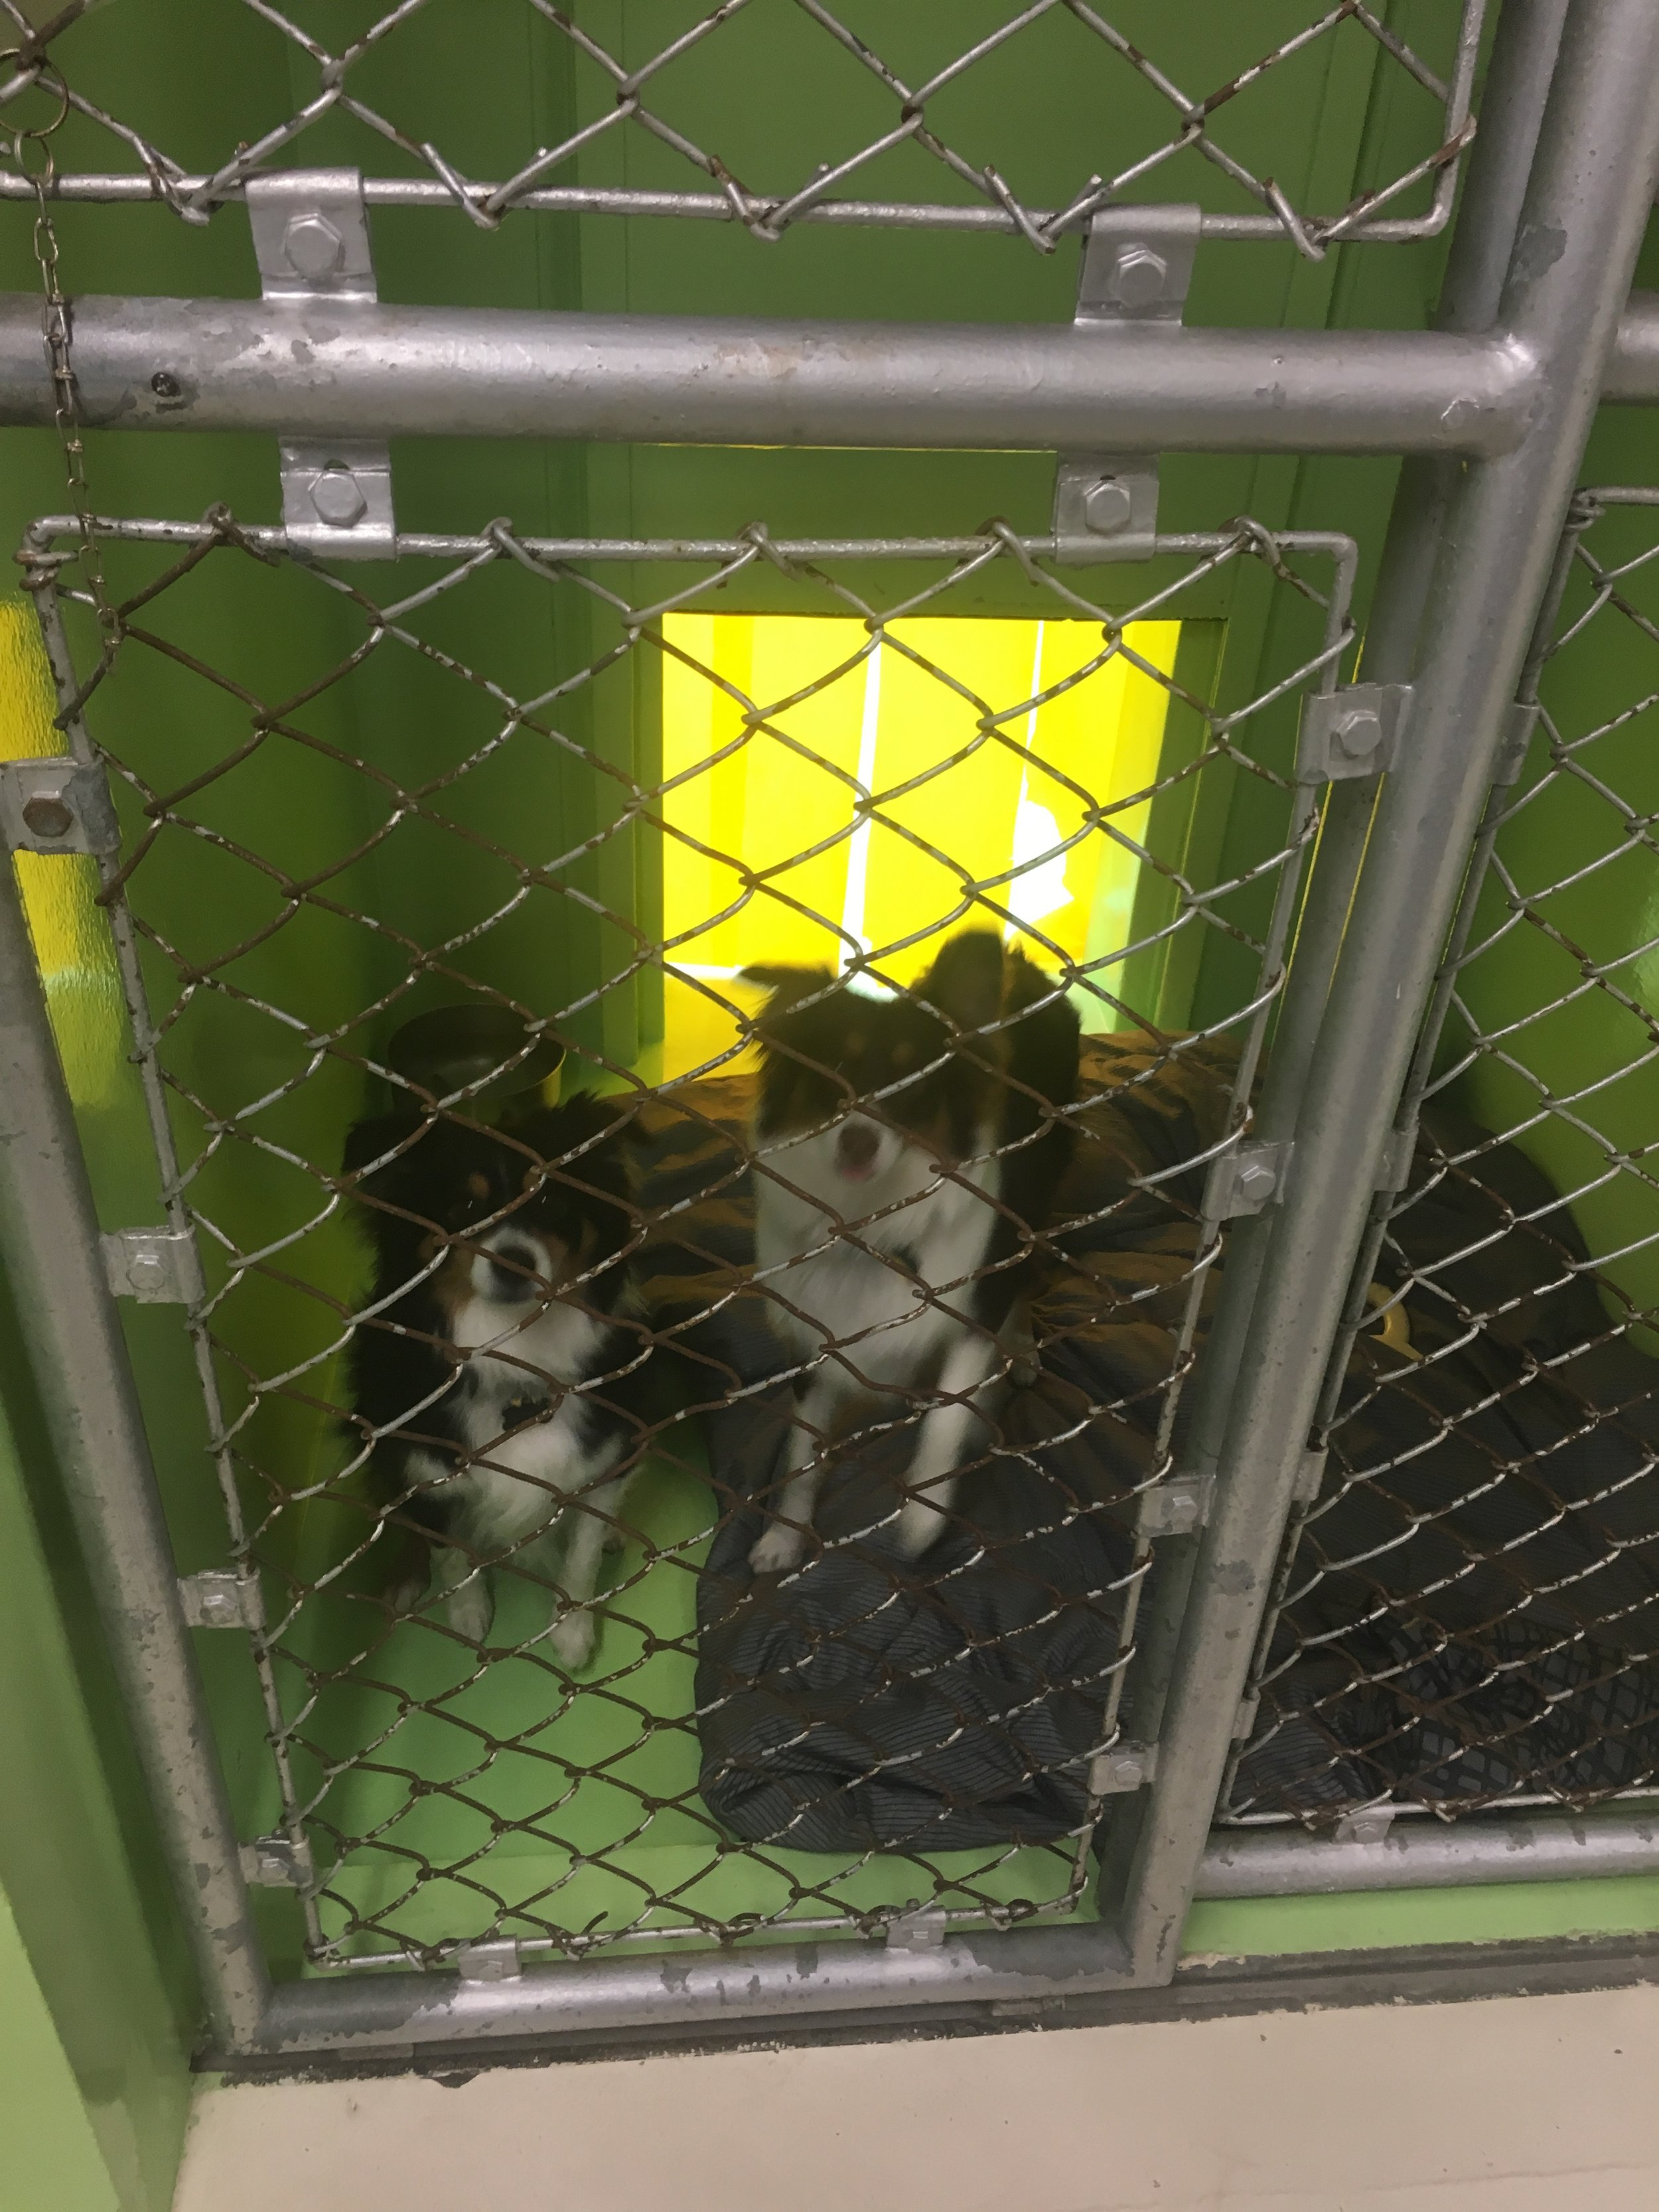 Here are the boys being picked up from their last day in the kennel